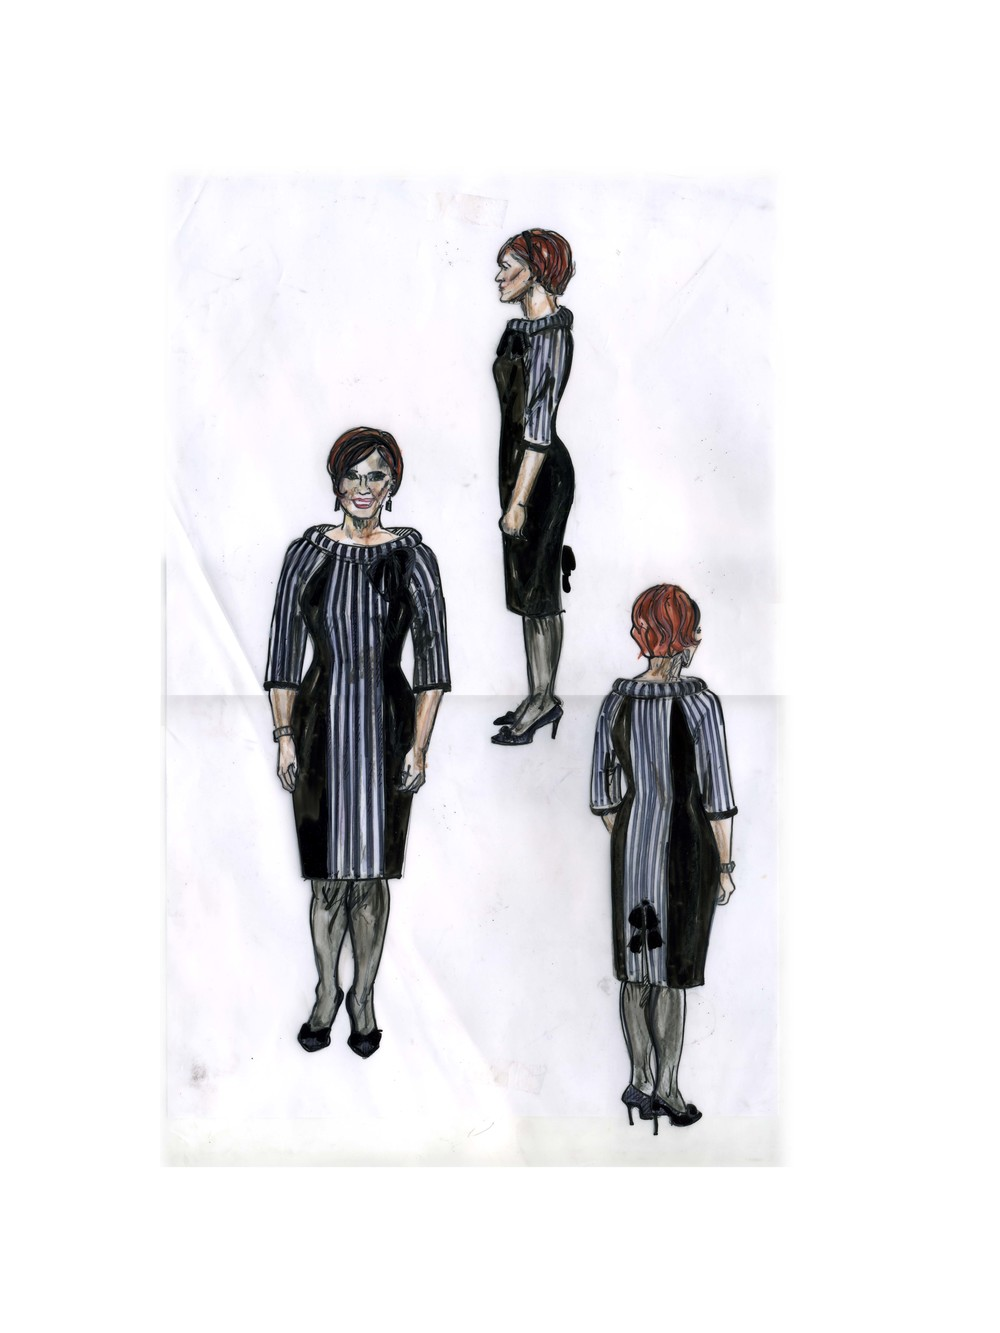 Company, Broadway (sketch of Susan dress by costume designer Ann Hould-Ward)